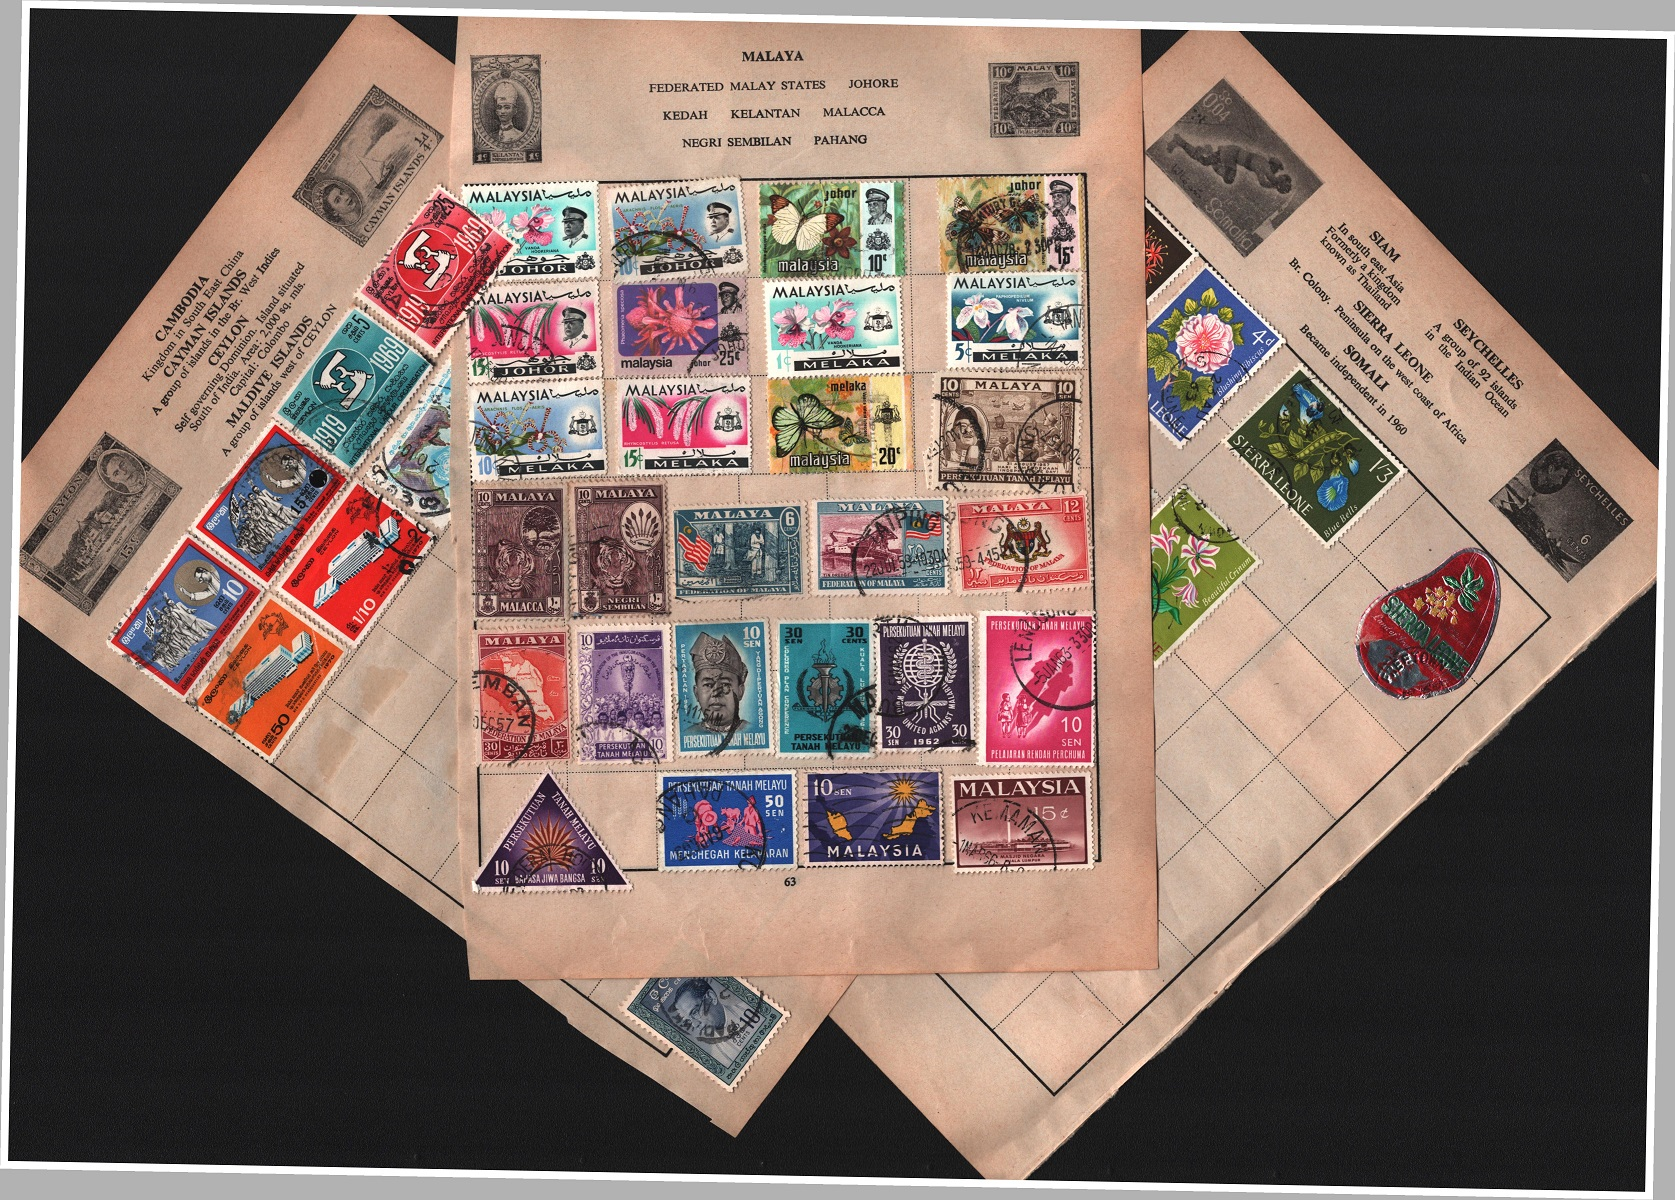 BCW stamp collection on 13 loose pages. Includes Bermuda, Barbados, Ceylon, Malaya, Singapore and